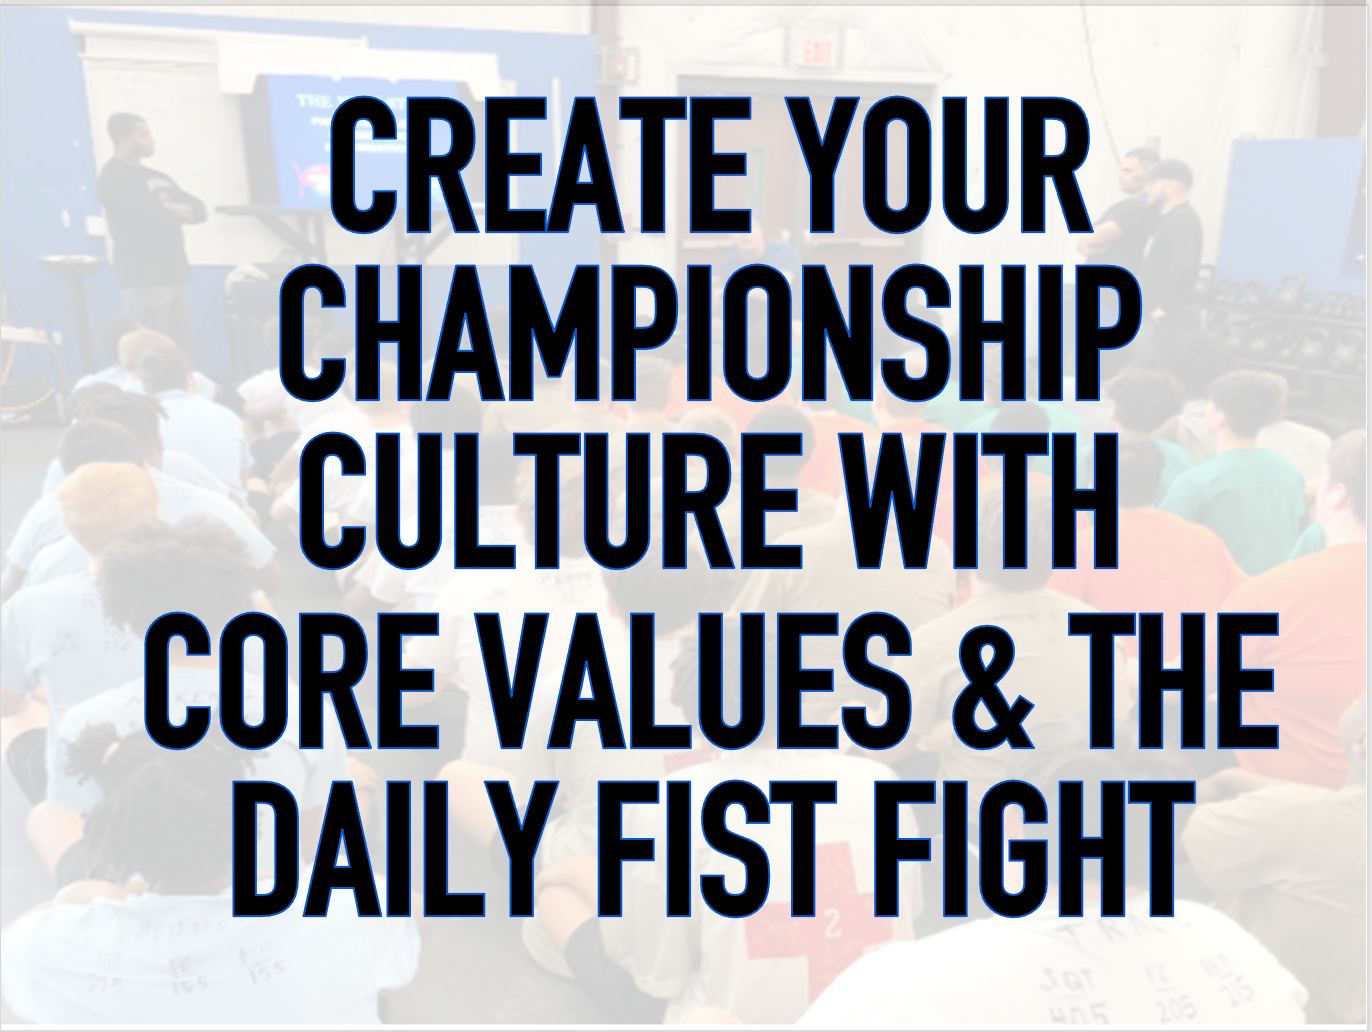 CREATE YOUR CHAMPIONSHIP CULTURE - ZOOM CLINIC RECORDING (67 MIN) SALE! REGULAR PRICE $34.99!